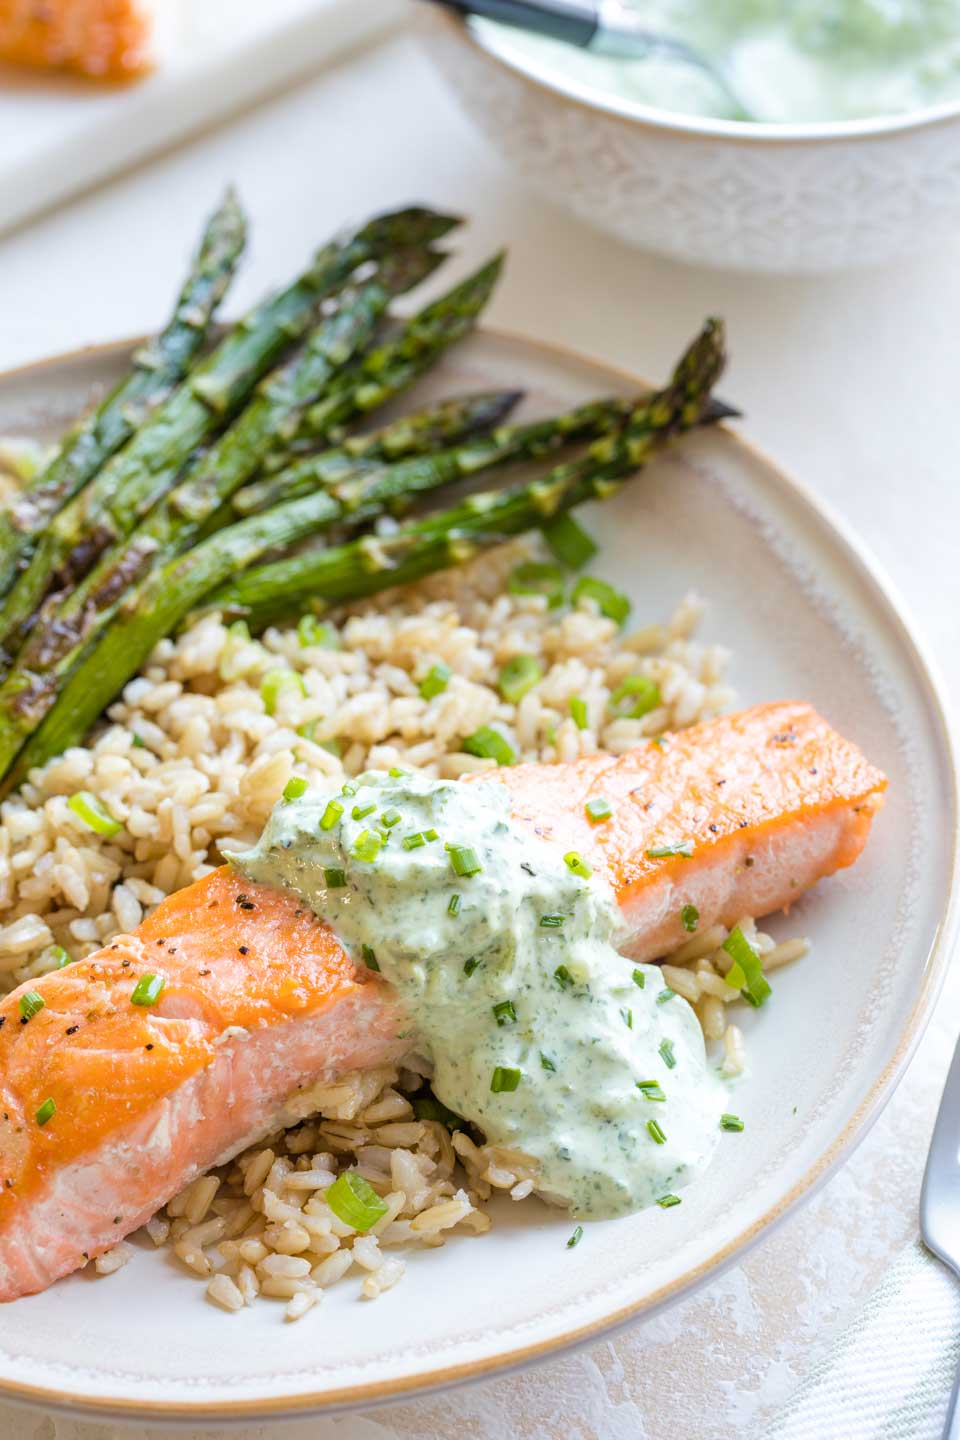 Closeup of the finished recipe, with the pan seared salmon arranged on a rimmed dinner plate, served with rice and asparagus, with utensils and additinal sauce just visible at the edges of the photo.